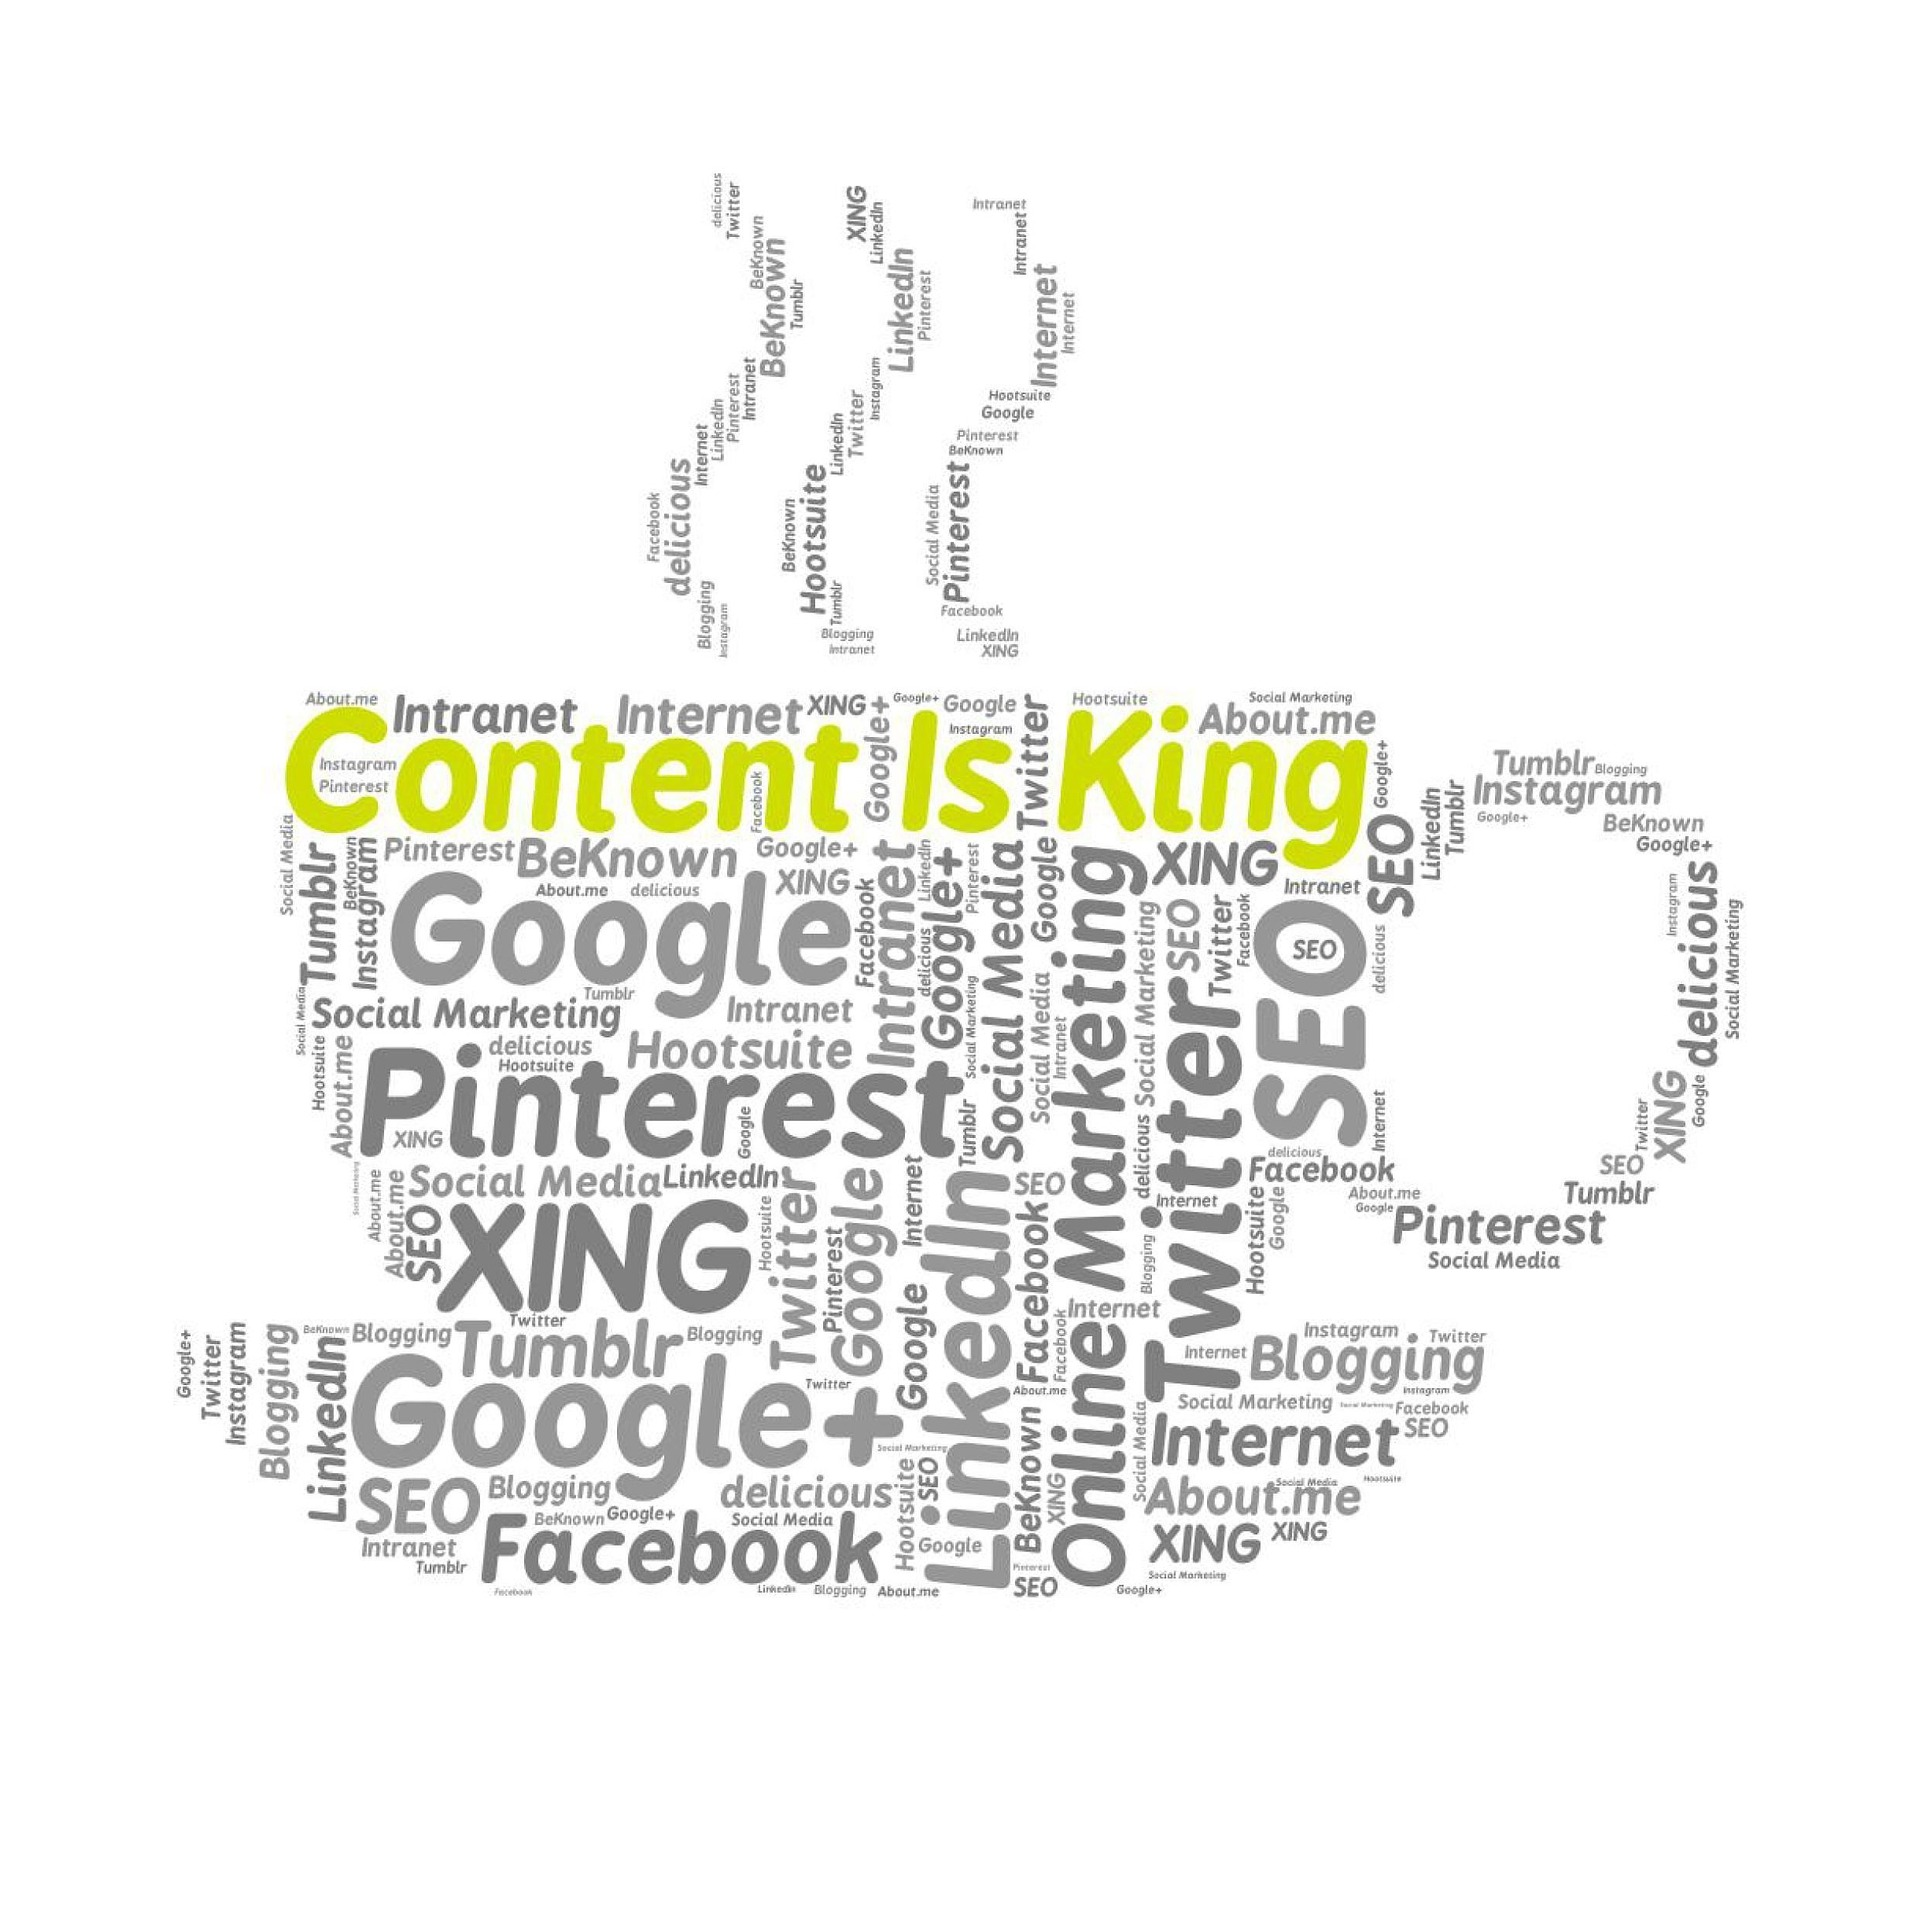 Content and Content Marketing